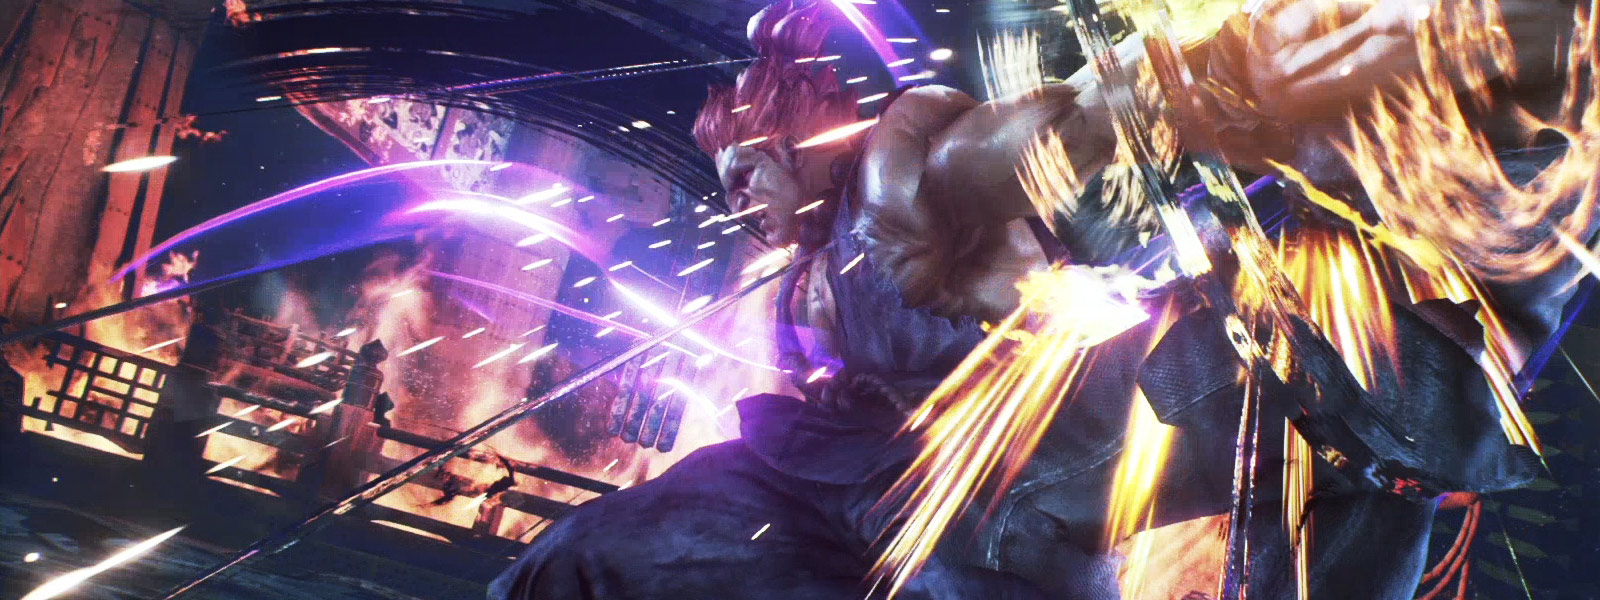 Street Fighter character, Akuma, charging up an attack